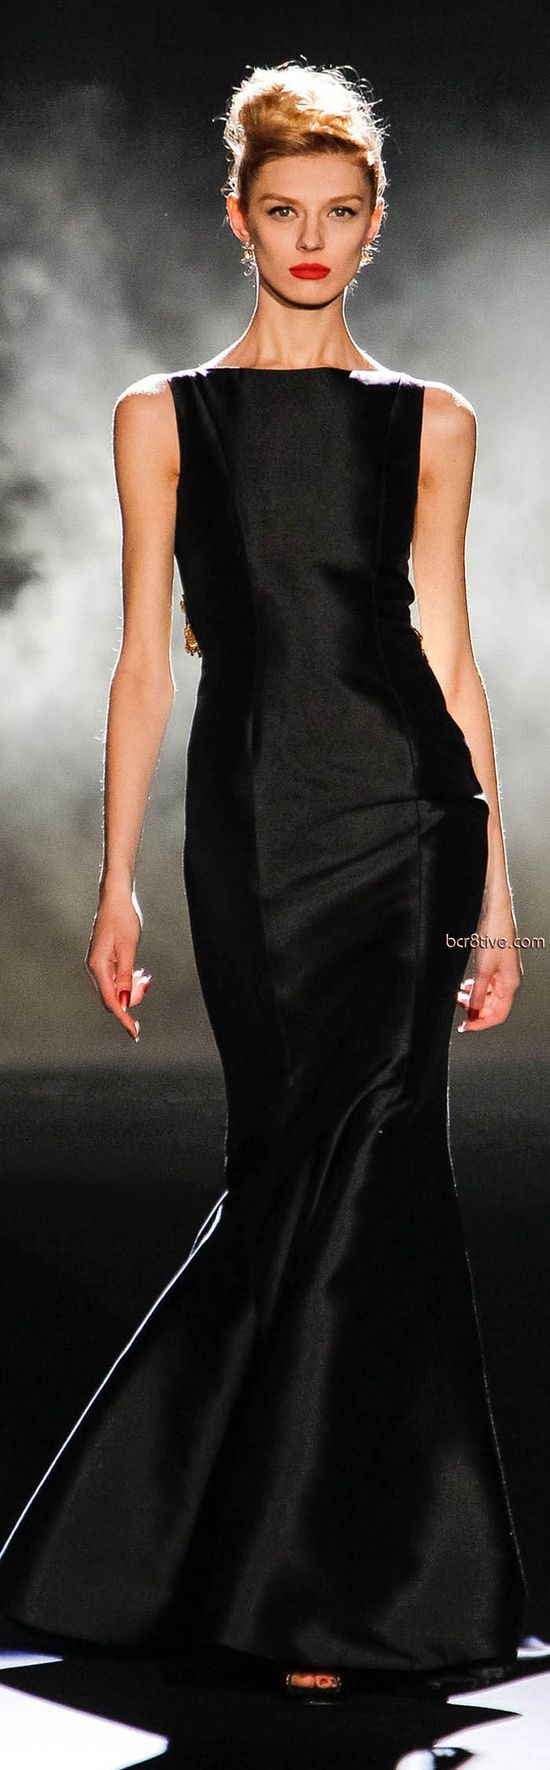 Badgley Mischka Fall Winter, 2013